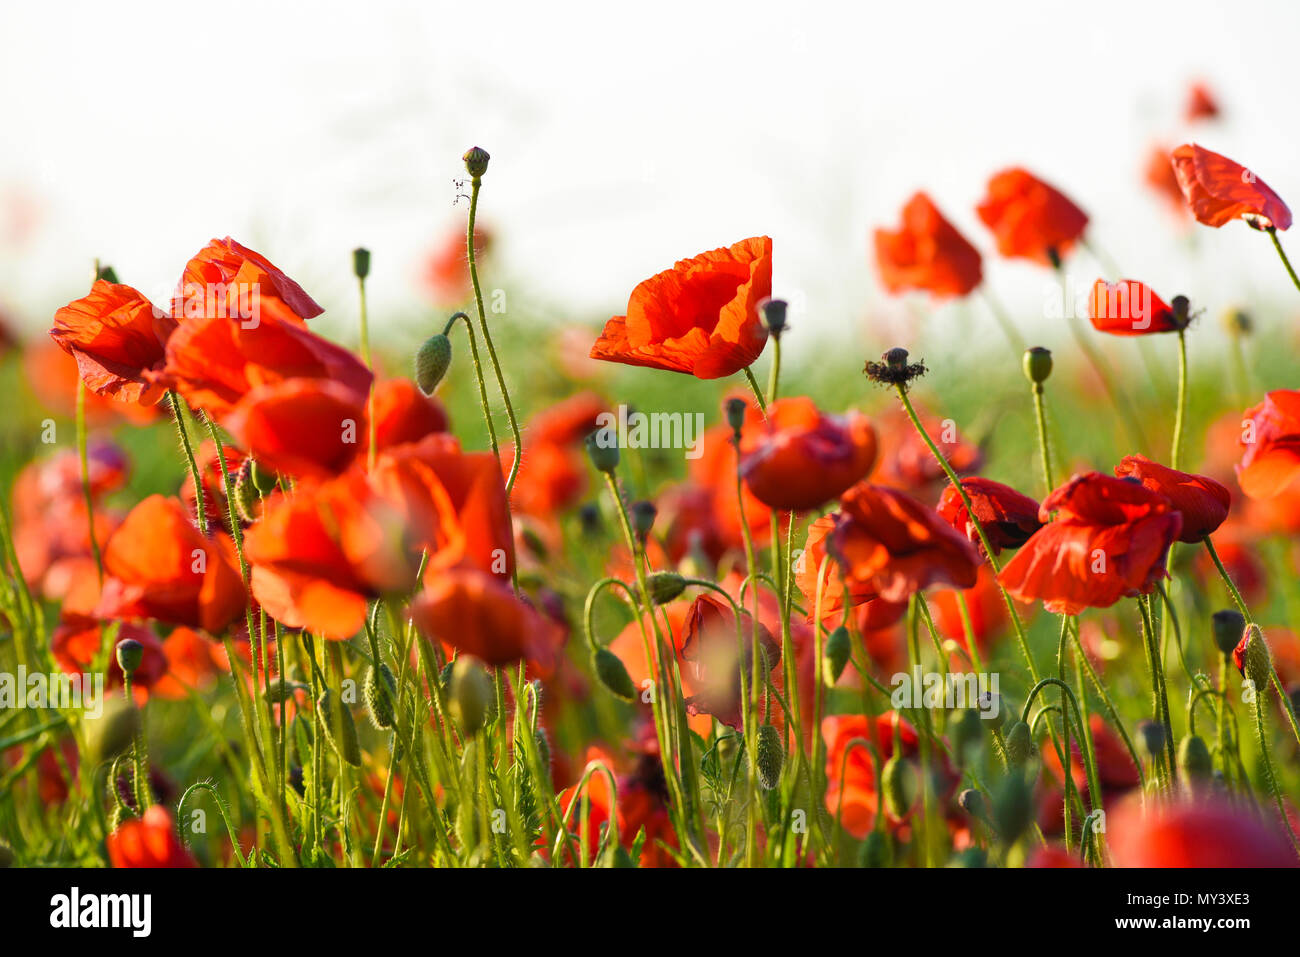 Beautiful poppies blooming in the summer field in Poland. Stock Photo